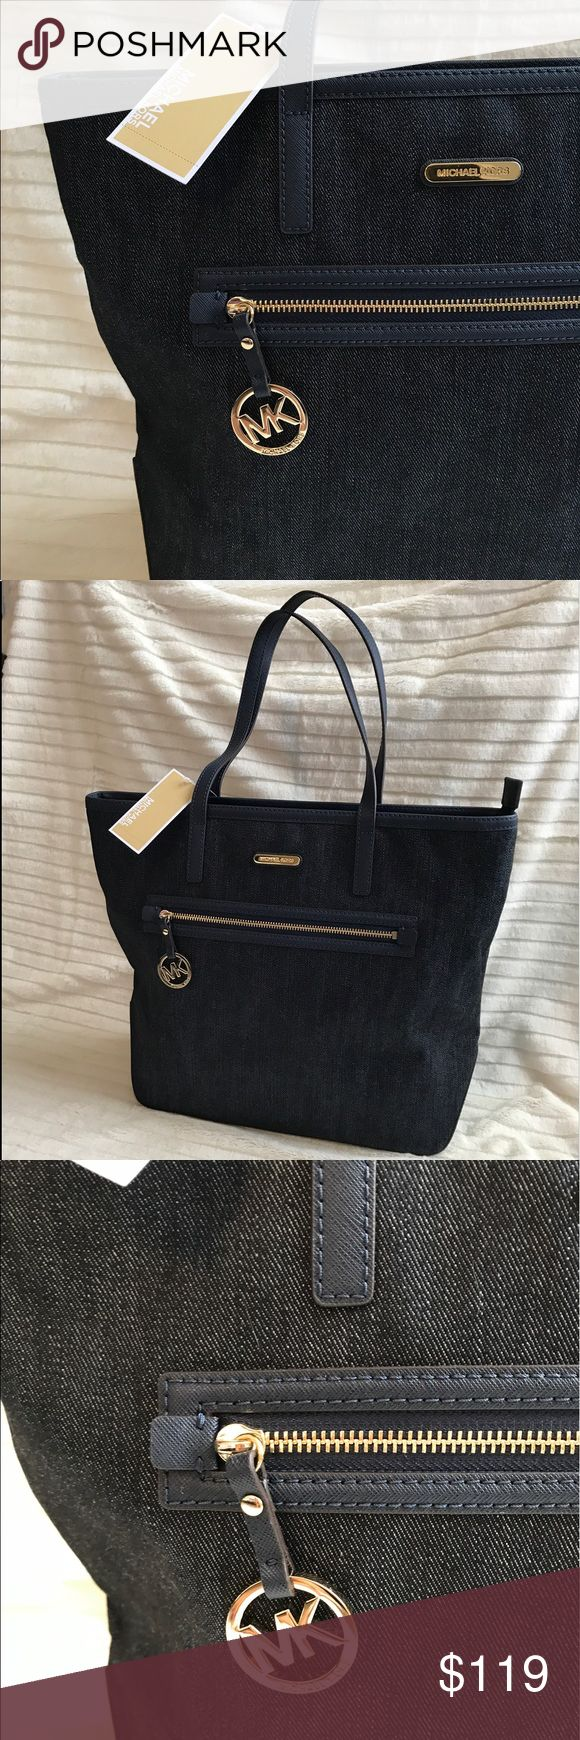 """MICHAEL KORS NWT denim tote/purse New 2017 model! Very roomy and versatile denim and leather shoulder tire/ purse. BRAND NEW WITH TAGS. Aprox. Dimensions are 16"""" wide x 14"""" tall Michael Kors Bags Totes"""